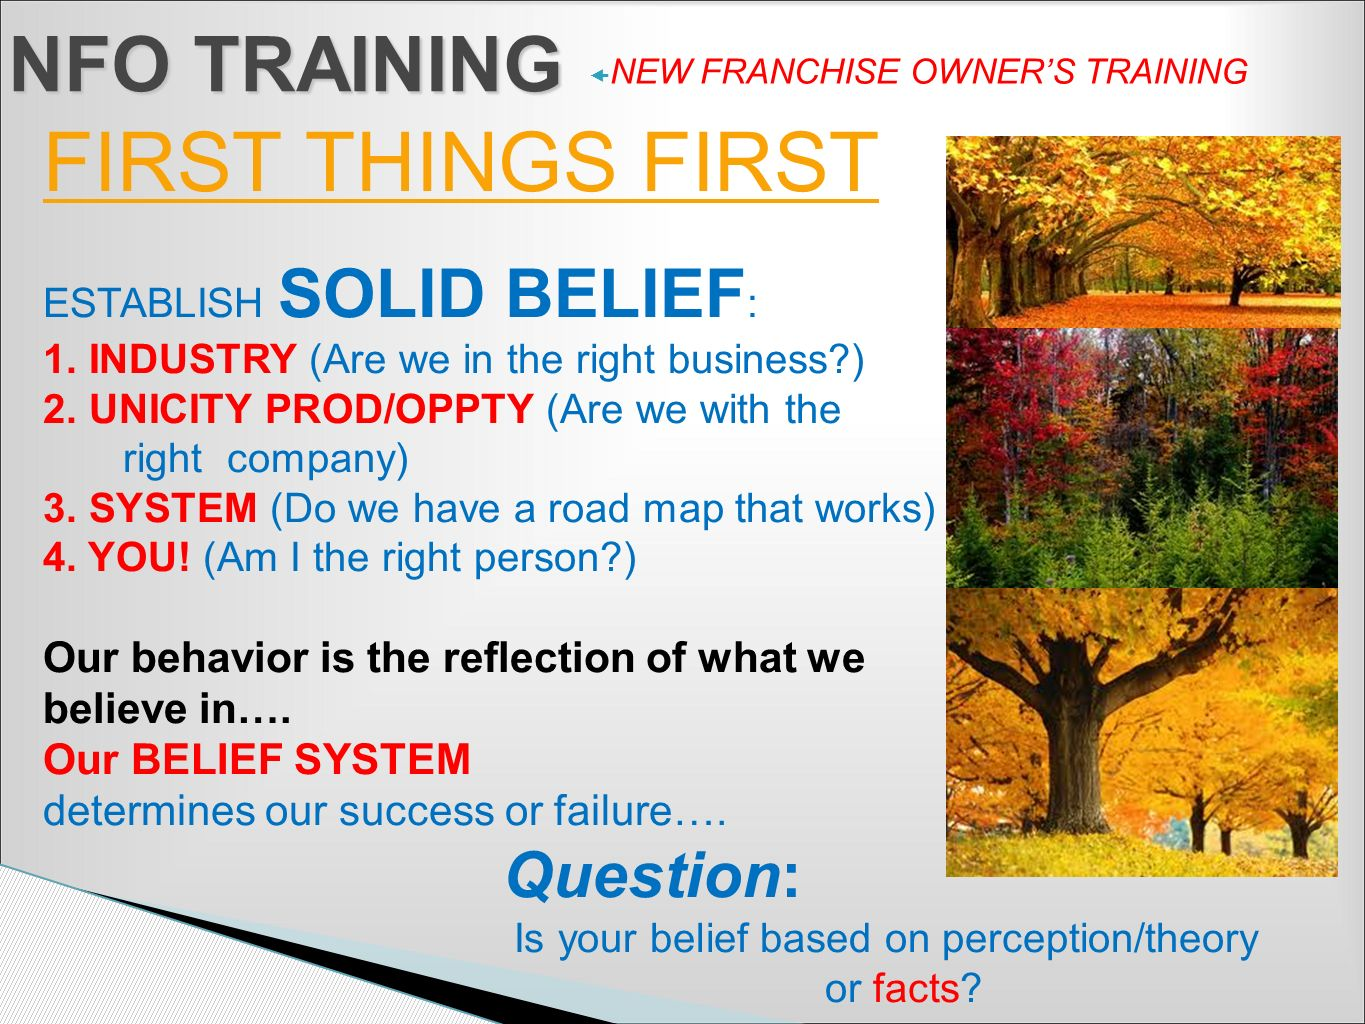 NEW FRANCHISE OWNERS TRAINING NFO TRAINING FIRST THINGS FIRST ESTABLISH SOLID BELIEF : 1. INDUSTRY (Are we in the right business?) 2. UNICITY PROD/OPP